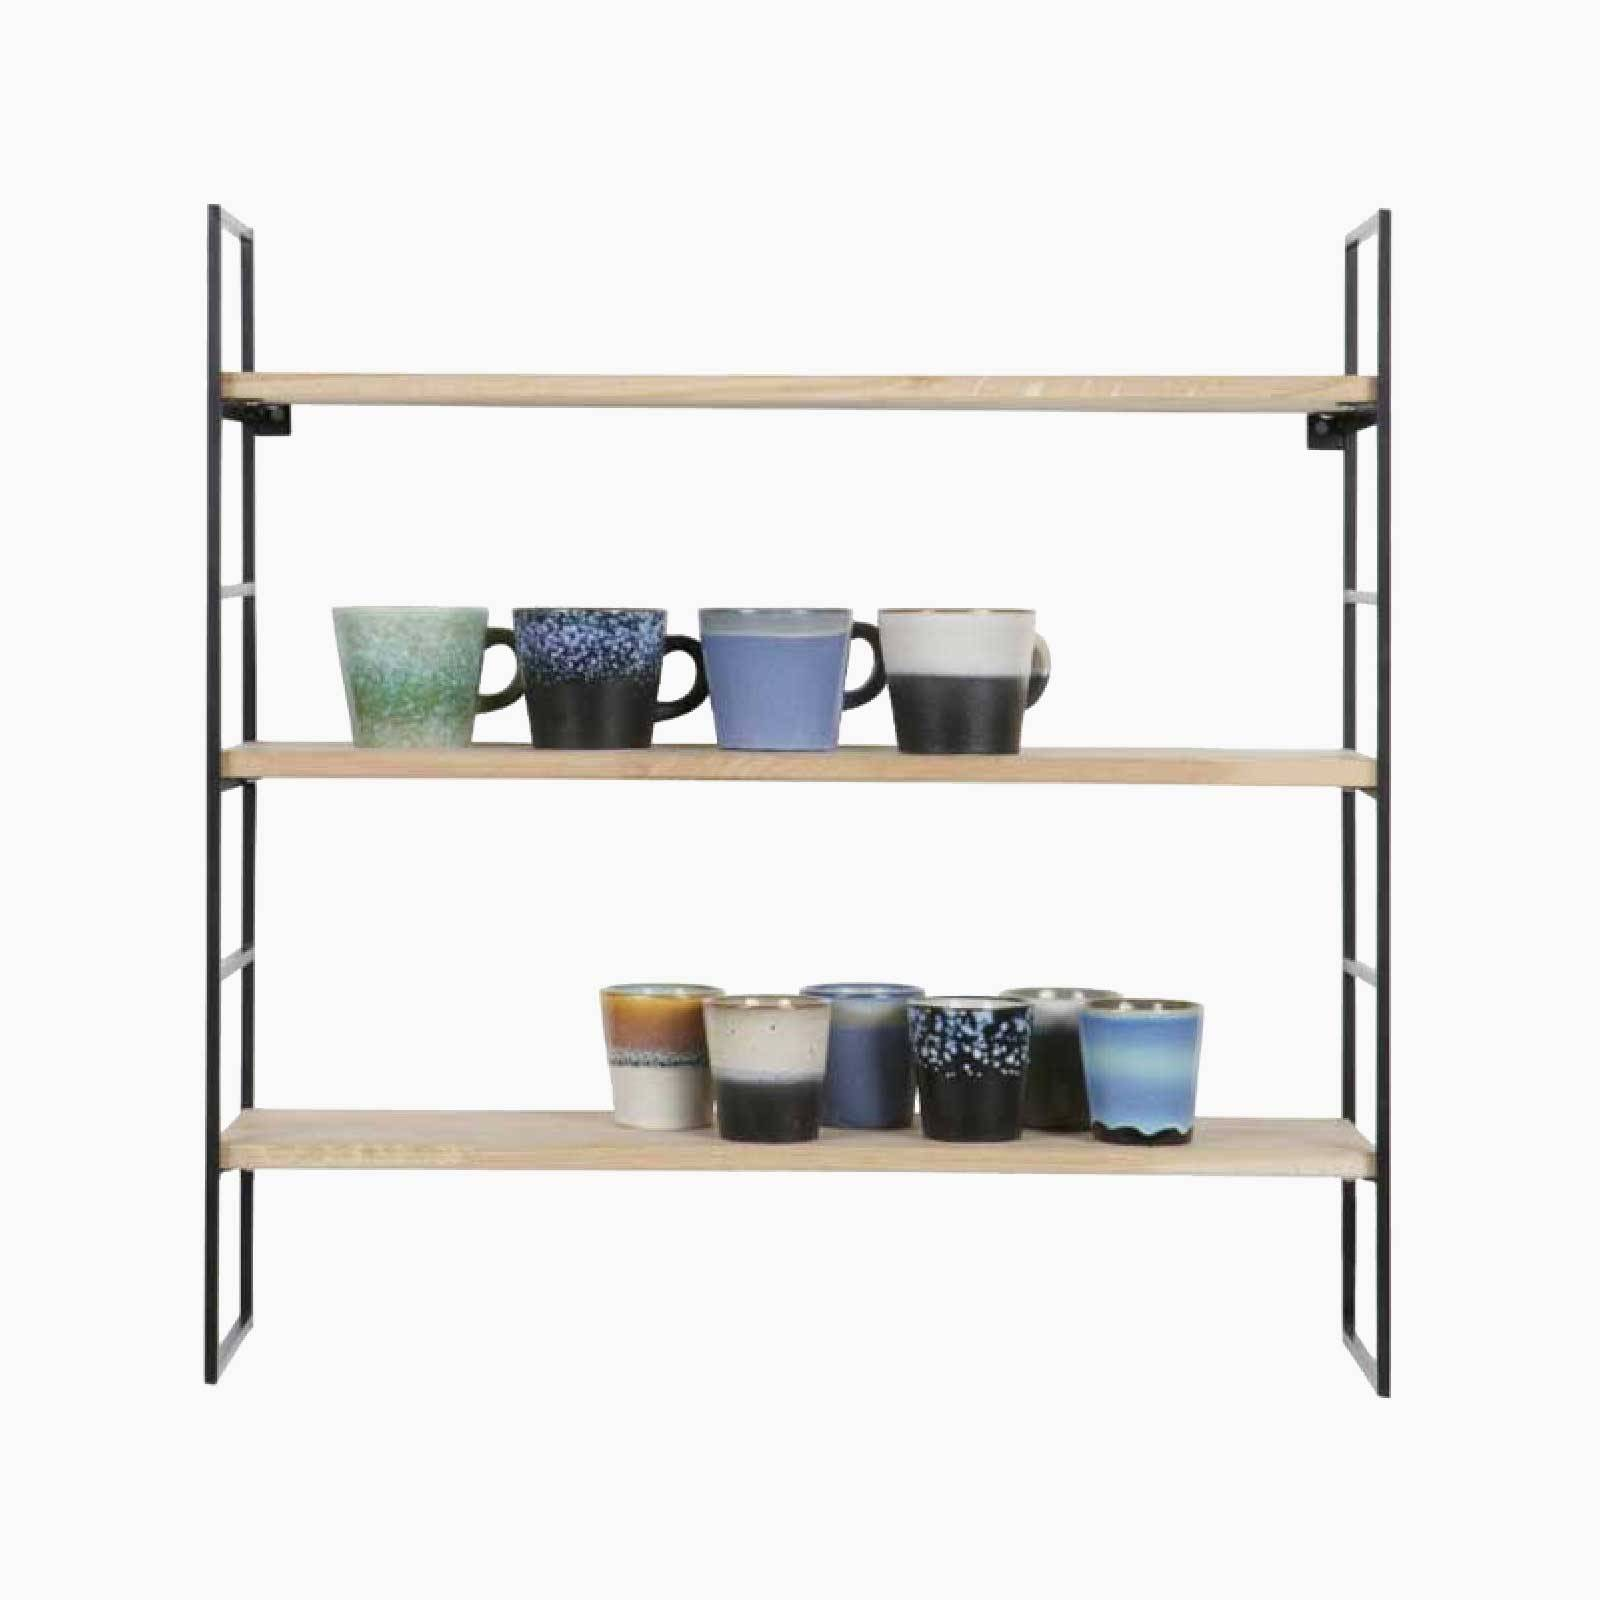 Meert Wall Shelf Black Metal Laddder Side